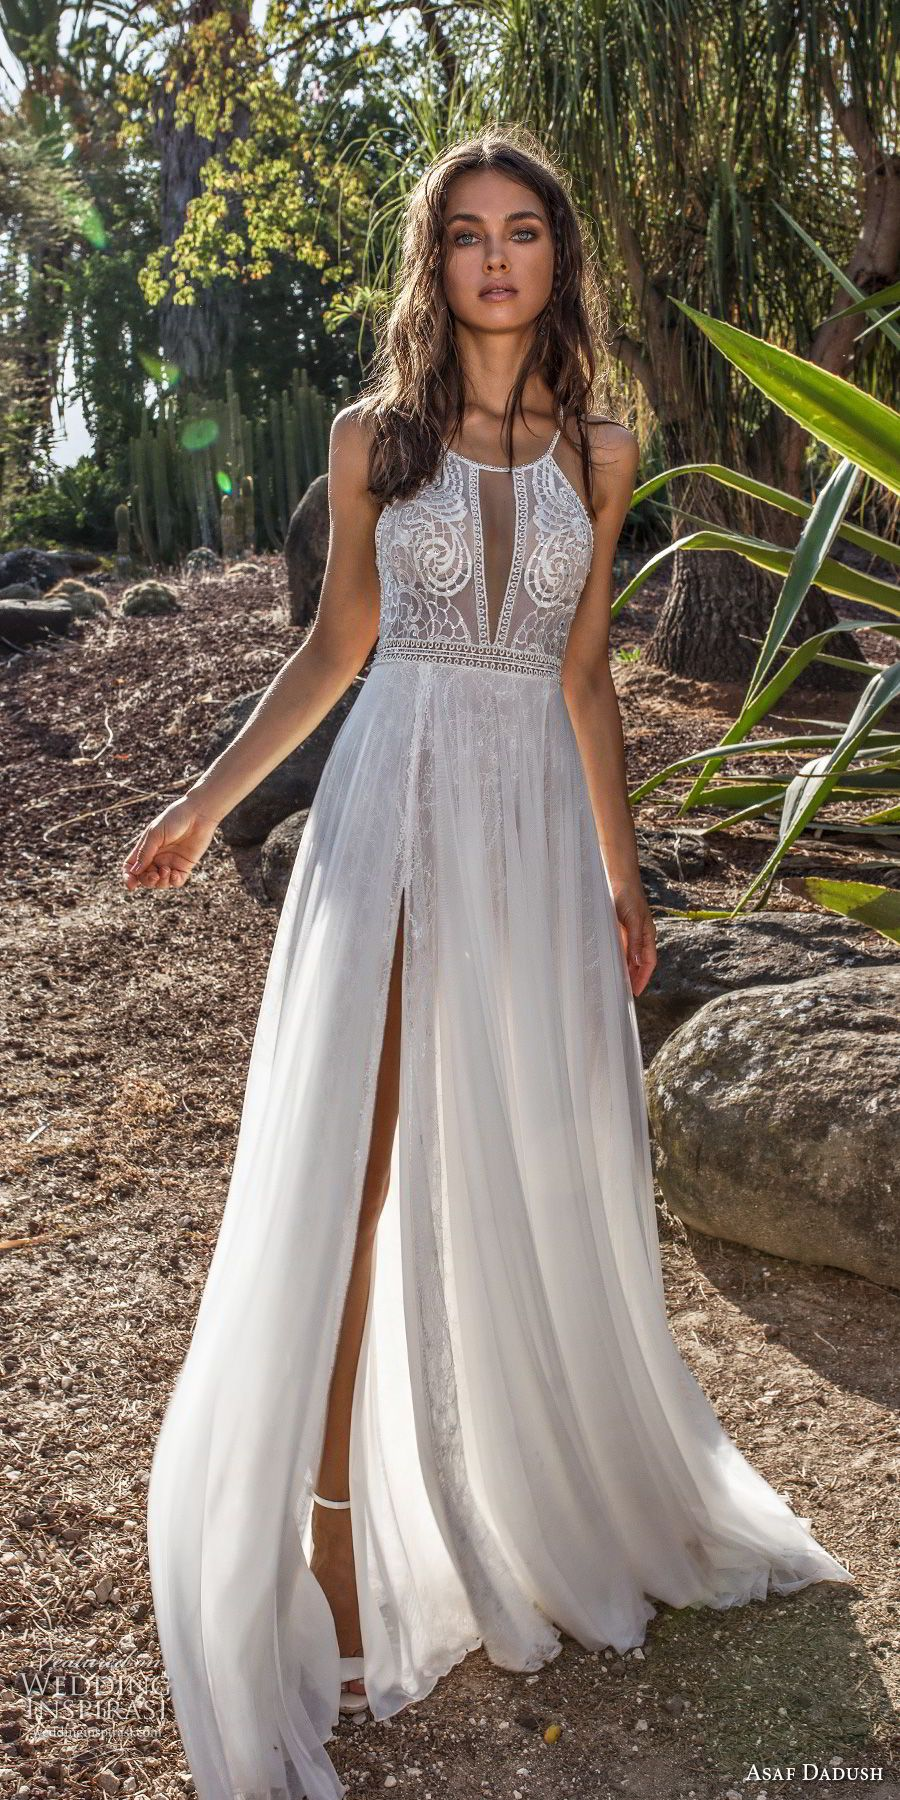 23182fc73b4 asaf dadush 2018 bridal sleevless halter jswel neck heavily embellished  bodice double slit skirt romantic soft a line wedding dress open back sweep  train ...